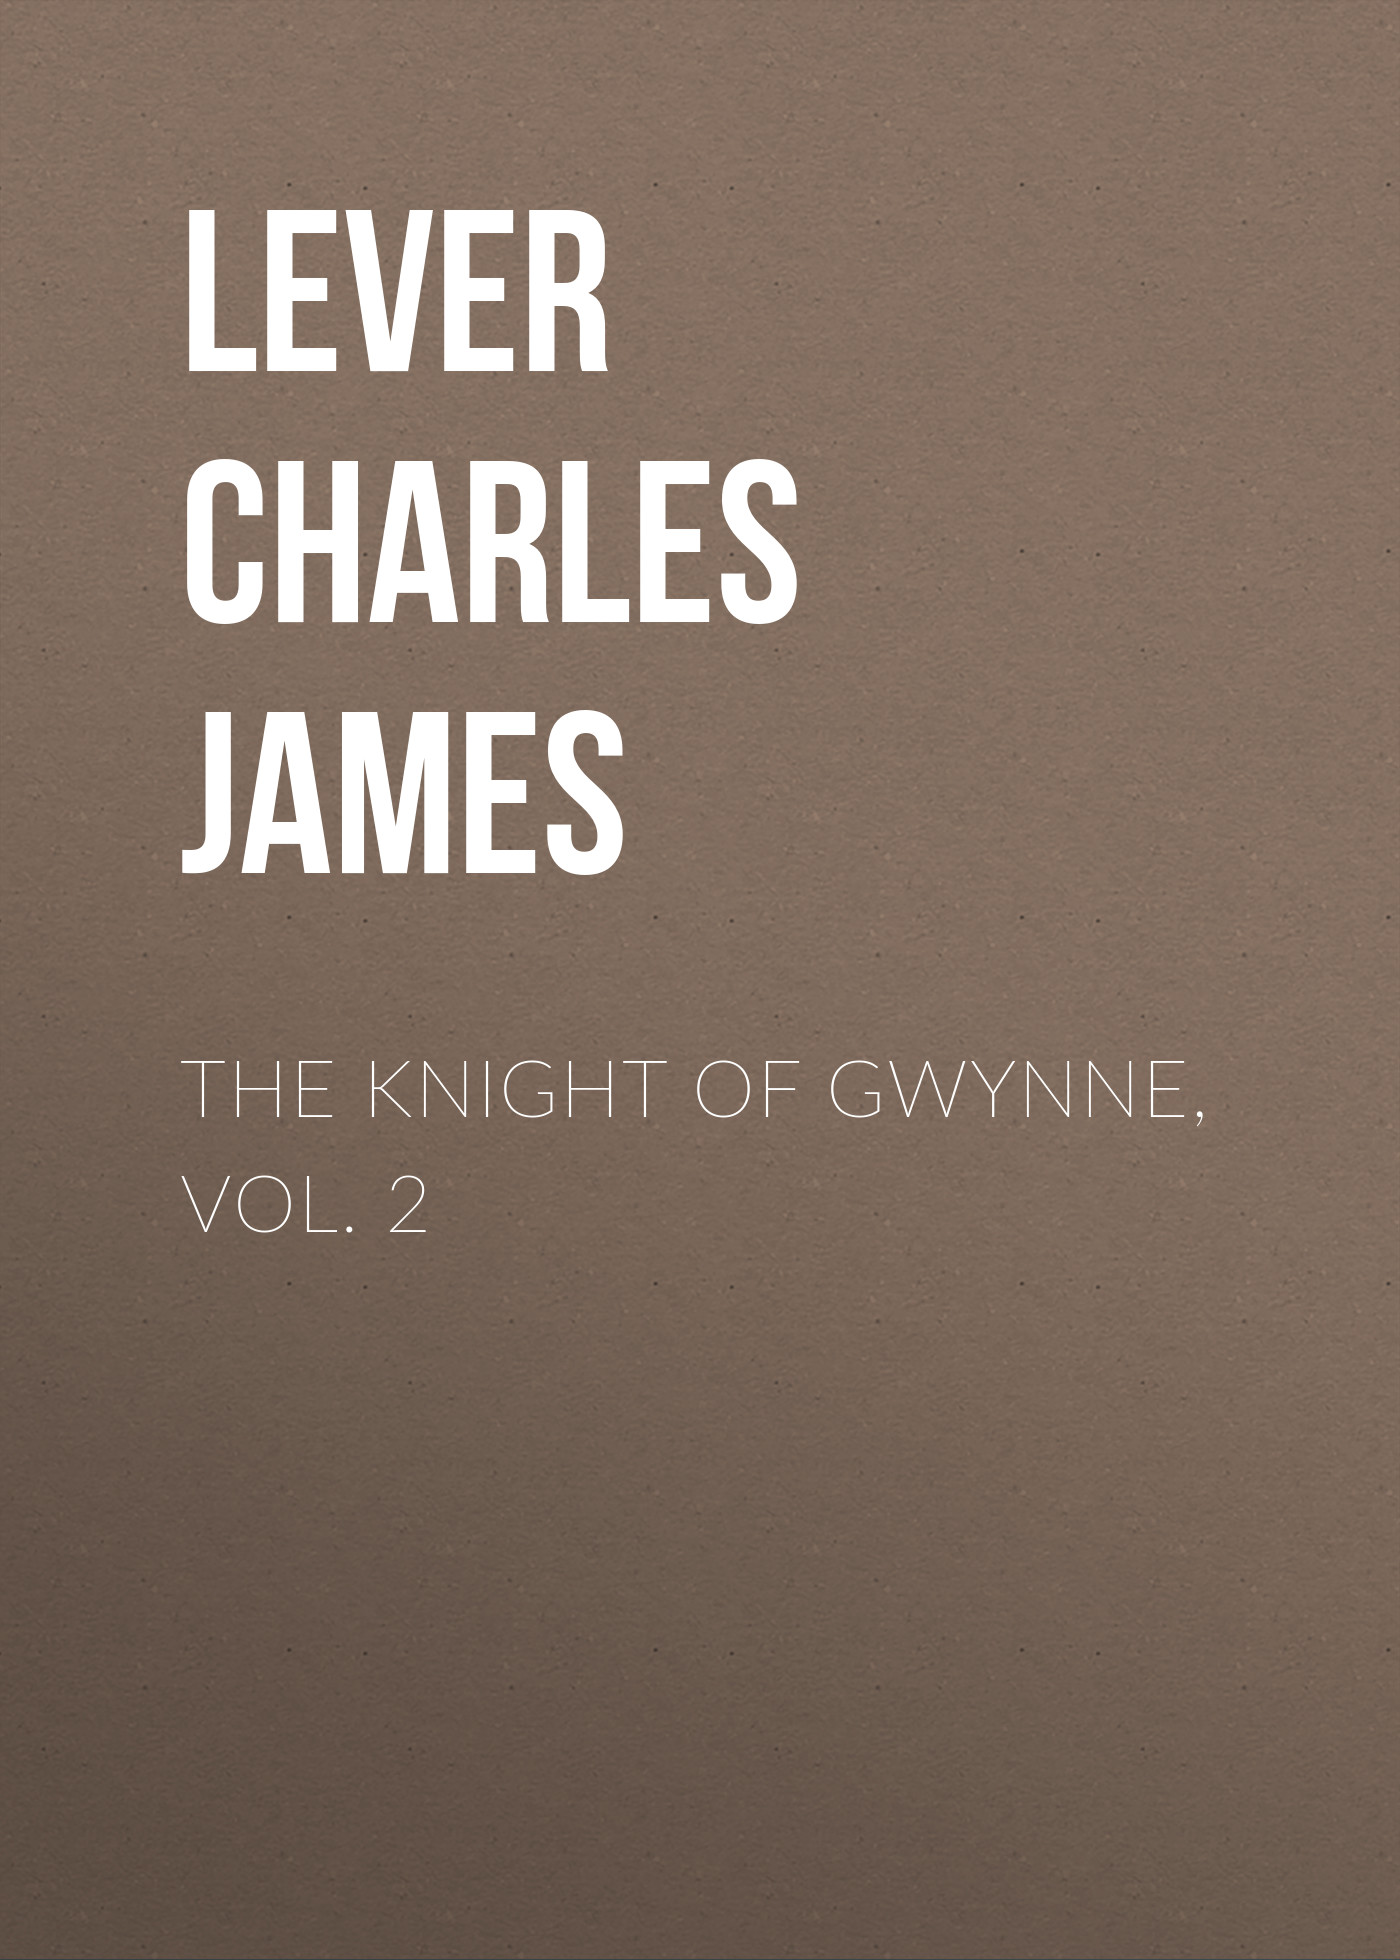 Lever Charles James The Knight Of Gwynne, Vol. 2 недорого